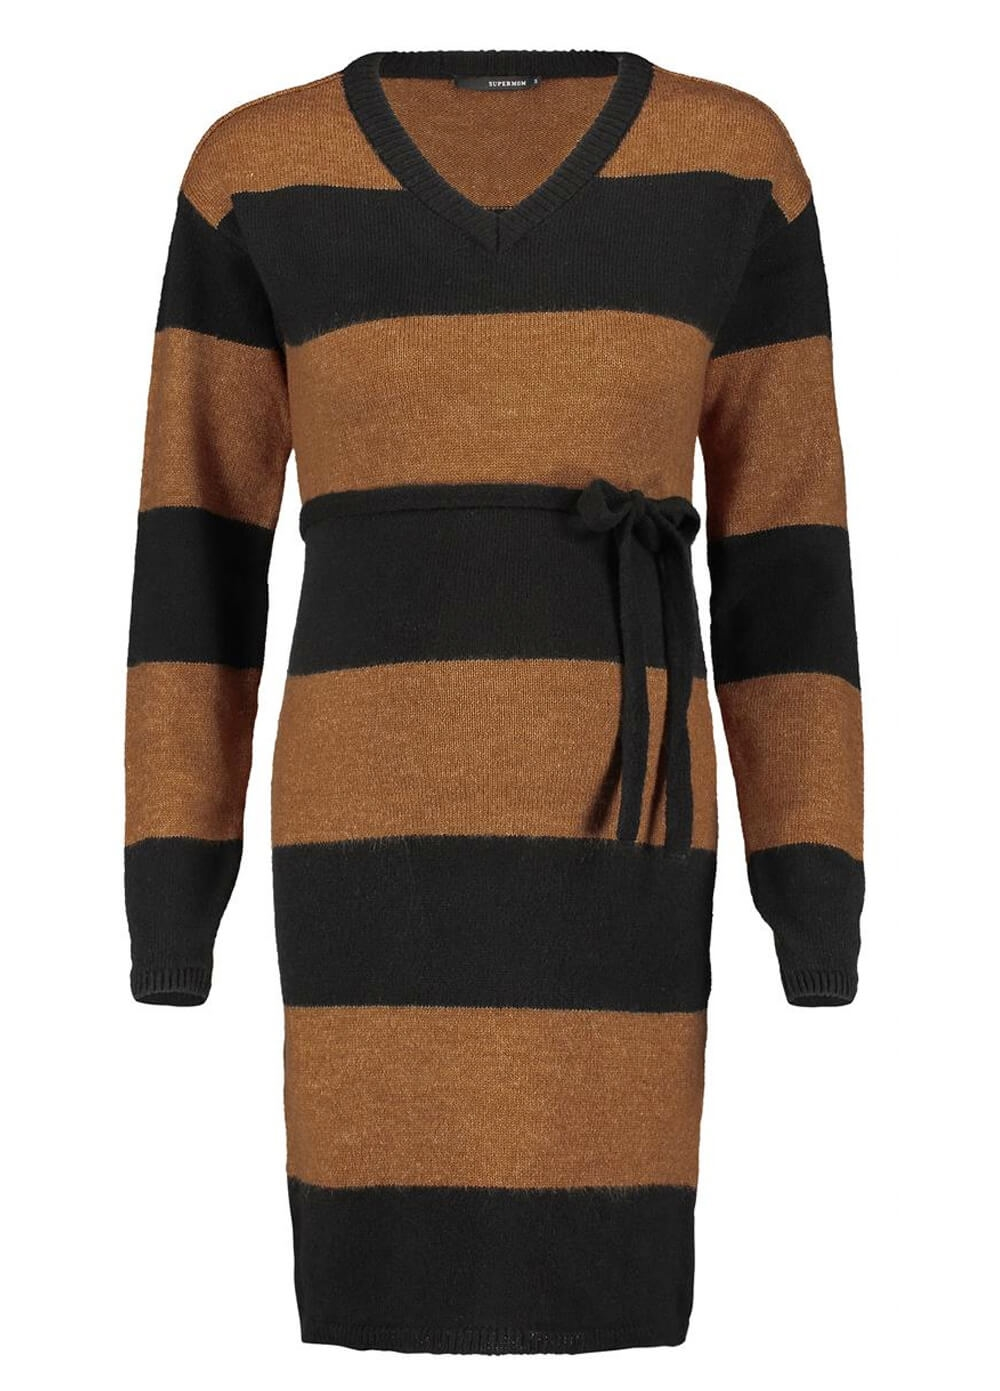 Supermom - Block Stripe Maternity Knit Sweater Dress | Queen Bee